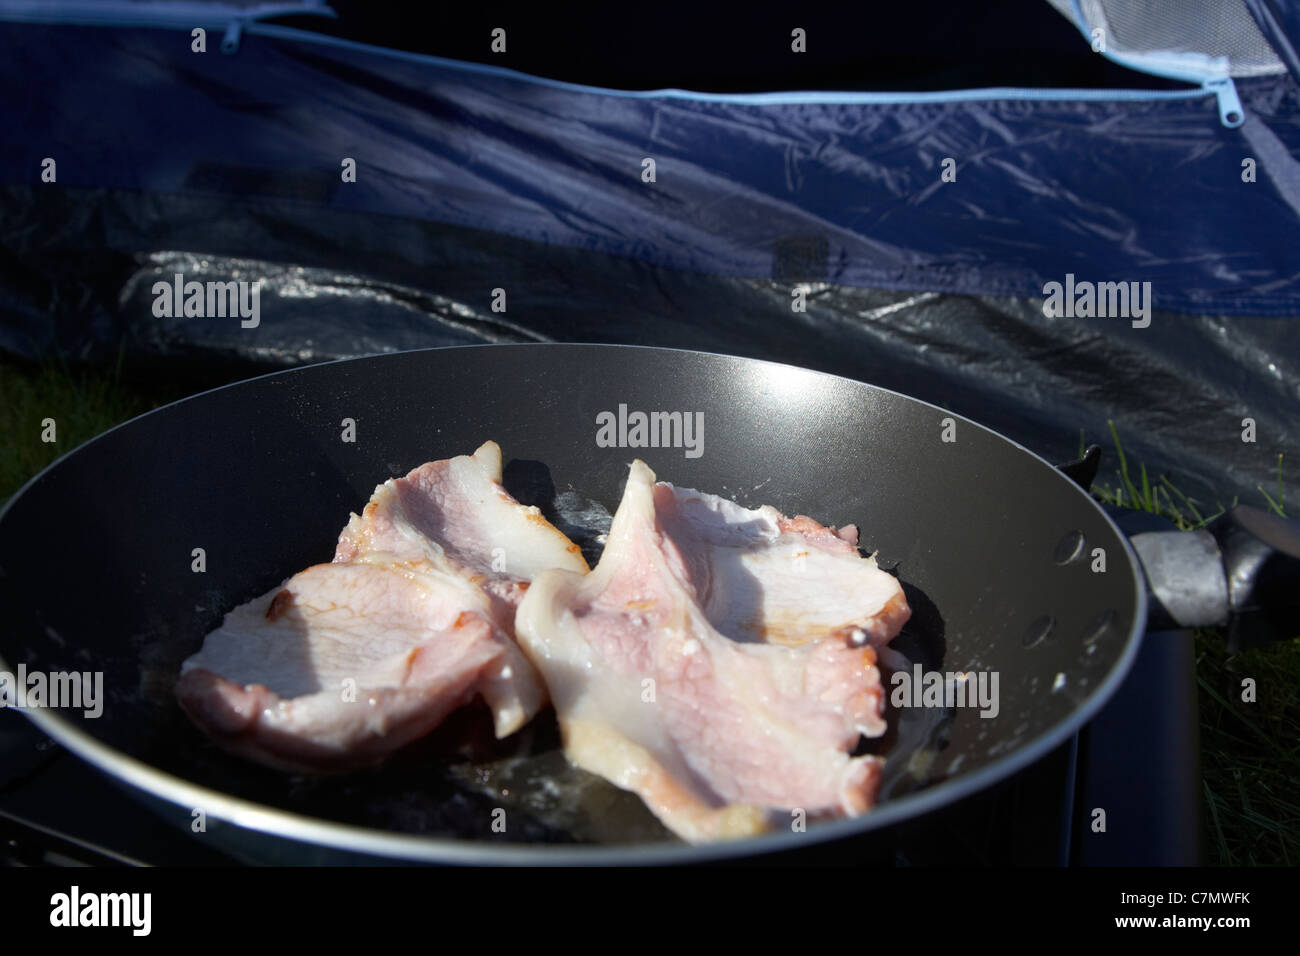 frying bacon on a small portable gas cooker in front of an open tent door - Stock Image